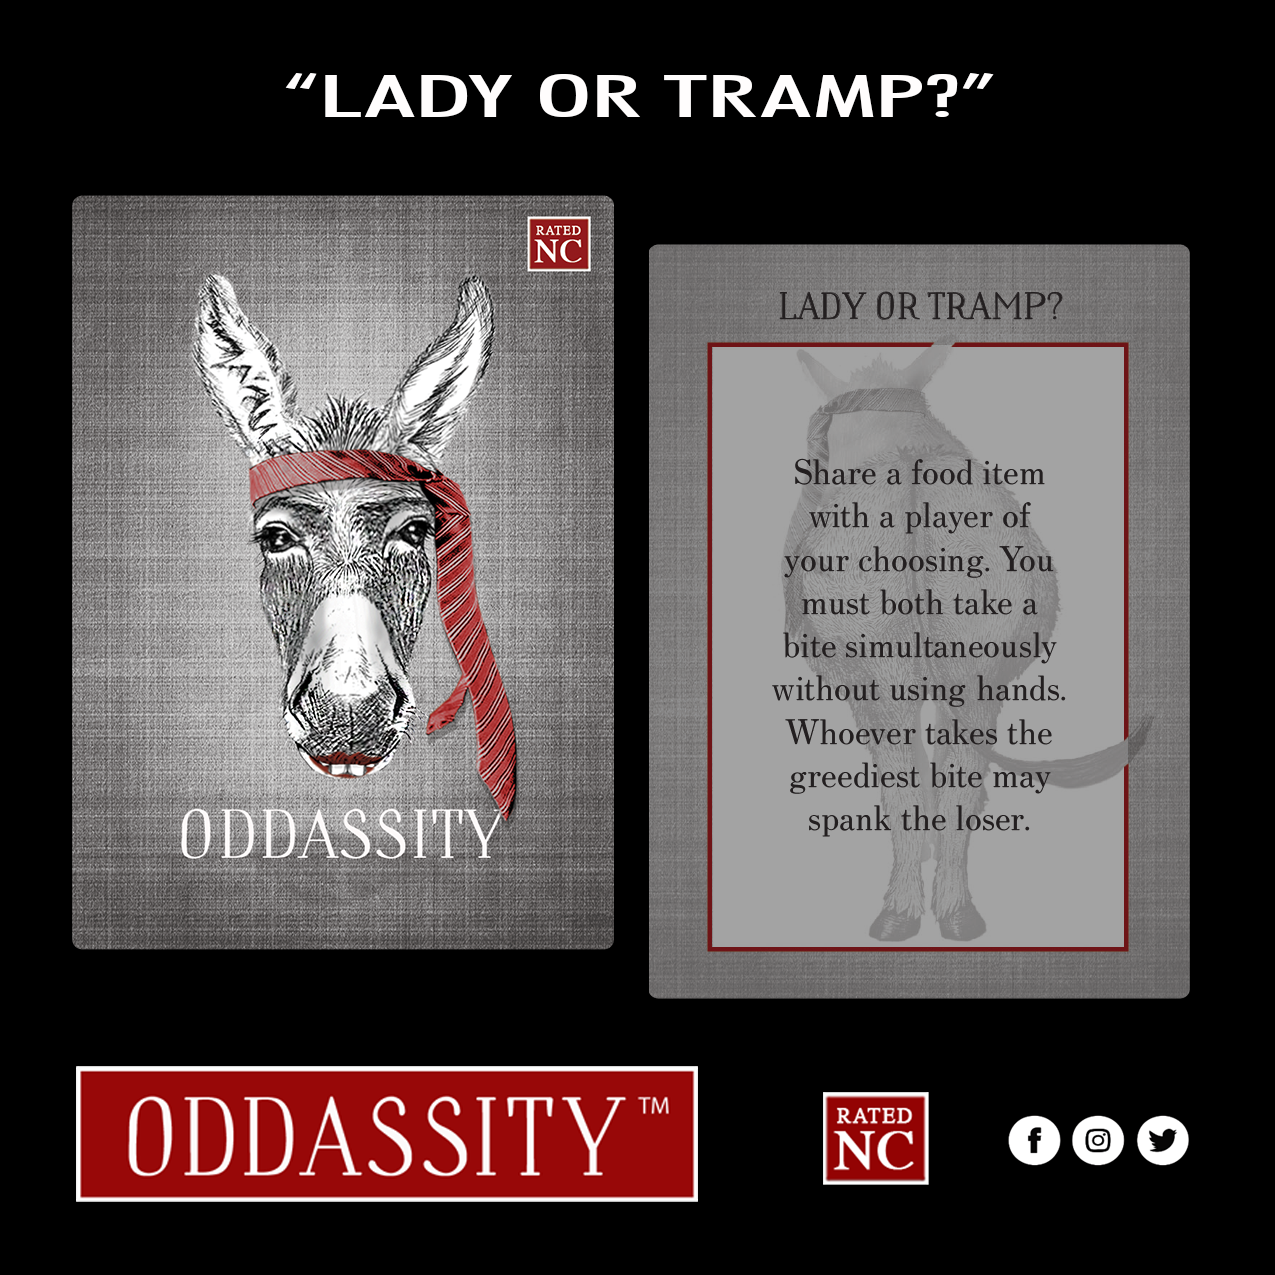 LADY OR TRAMP   Share a food item with a player of your choosing. You must both take a bite simultaneously without using hands. Whoever takes the greediest bite may spank the loser.